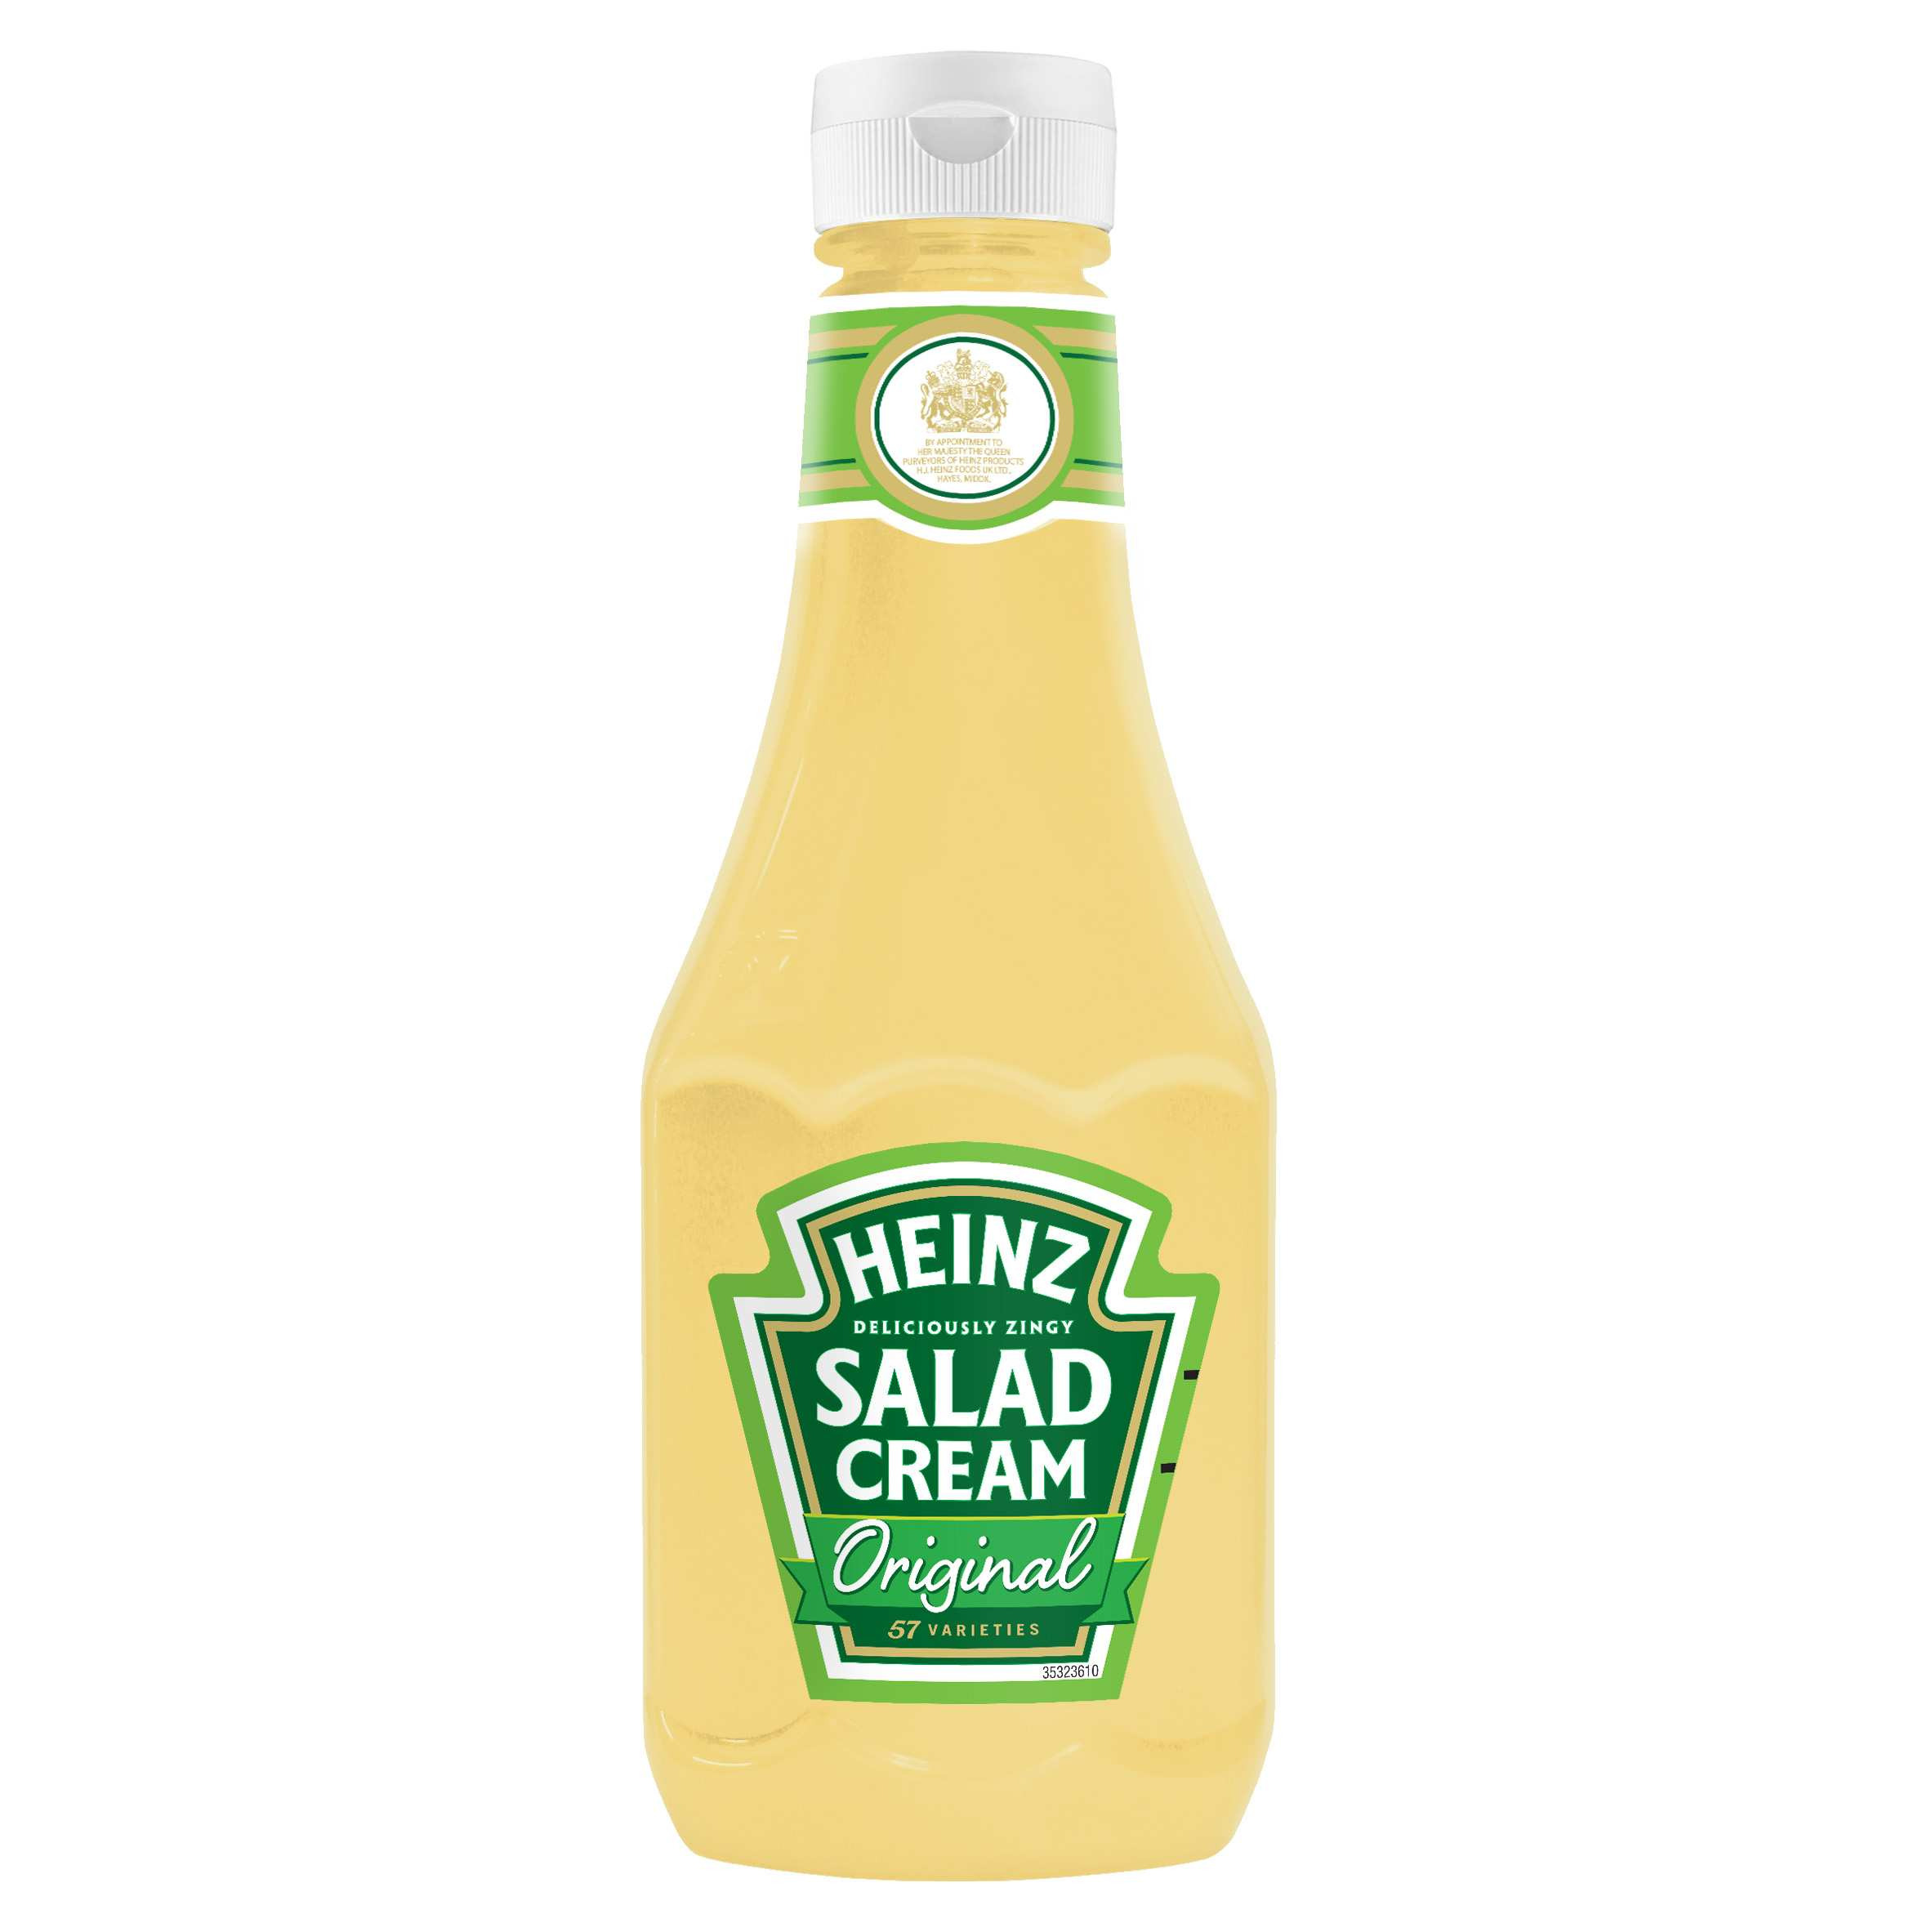 Heinz Salad Cream 875ml Bottom Up image